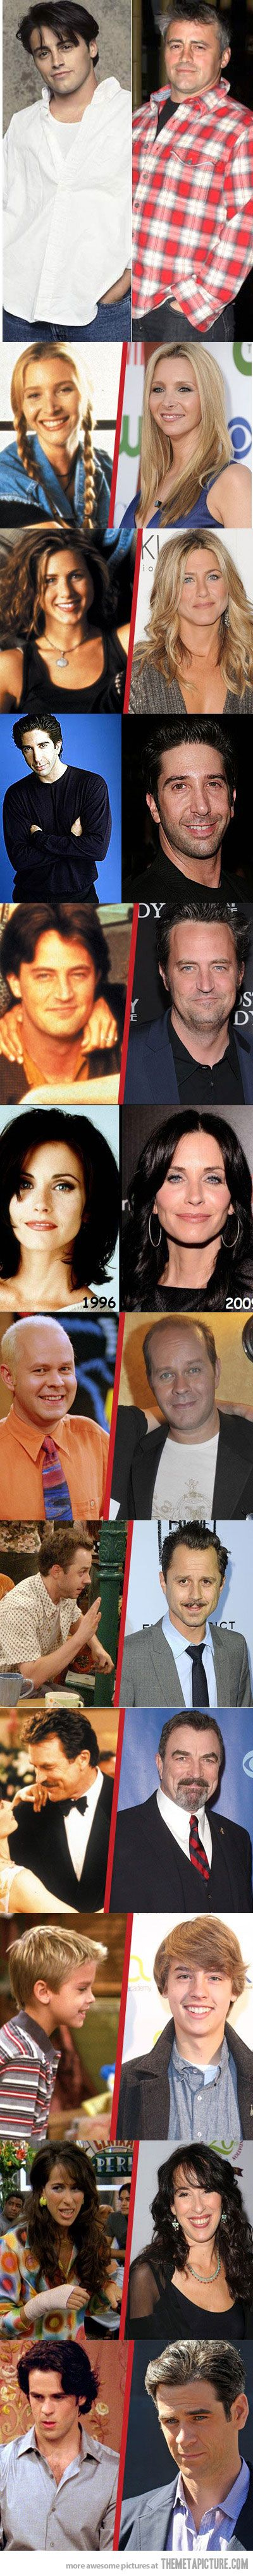 The cast of Friends, then and now